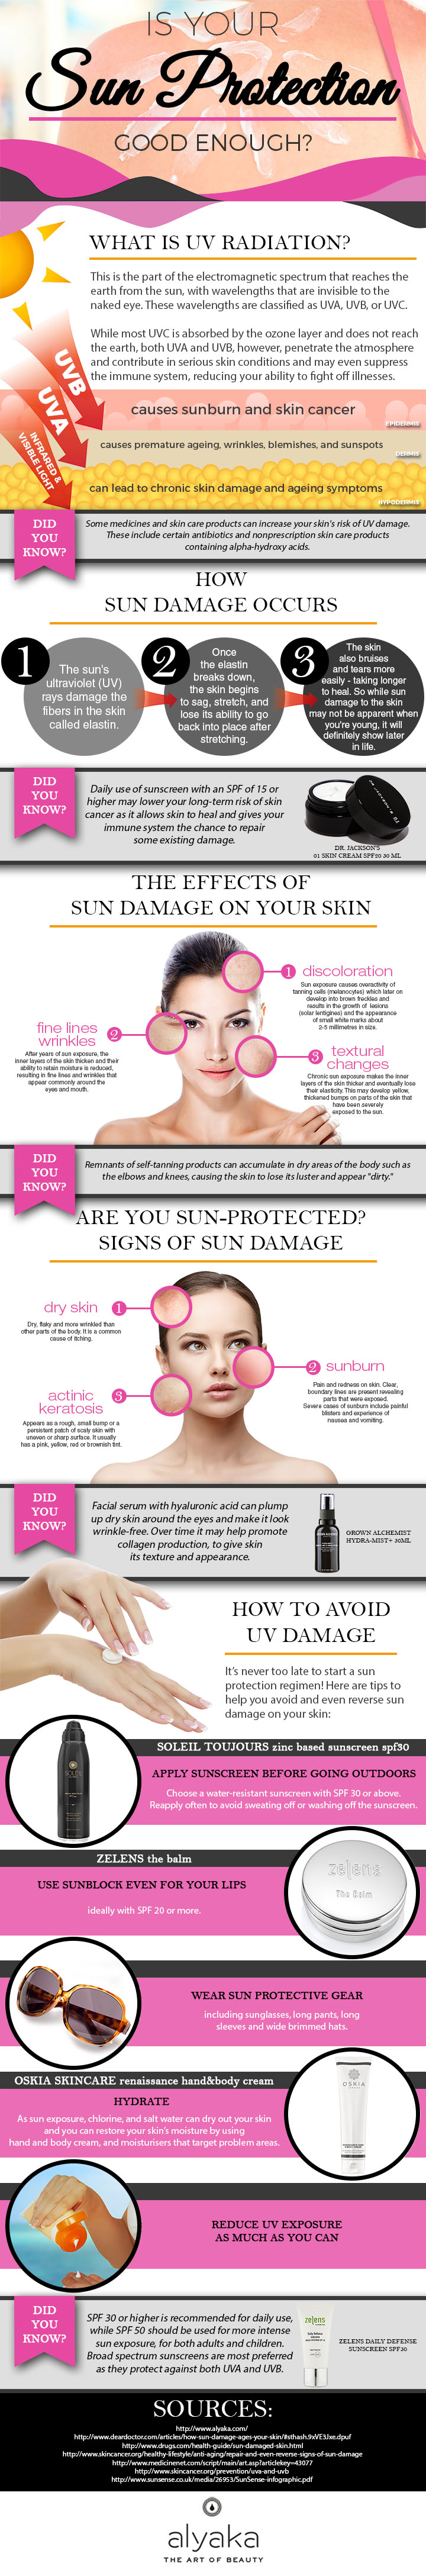 Are You Sun Protected?